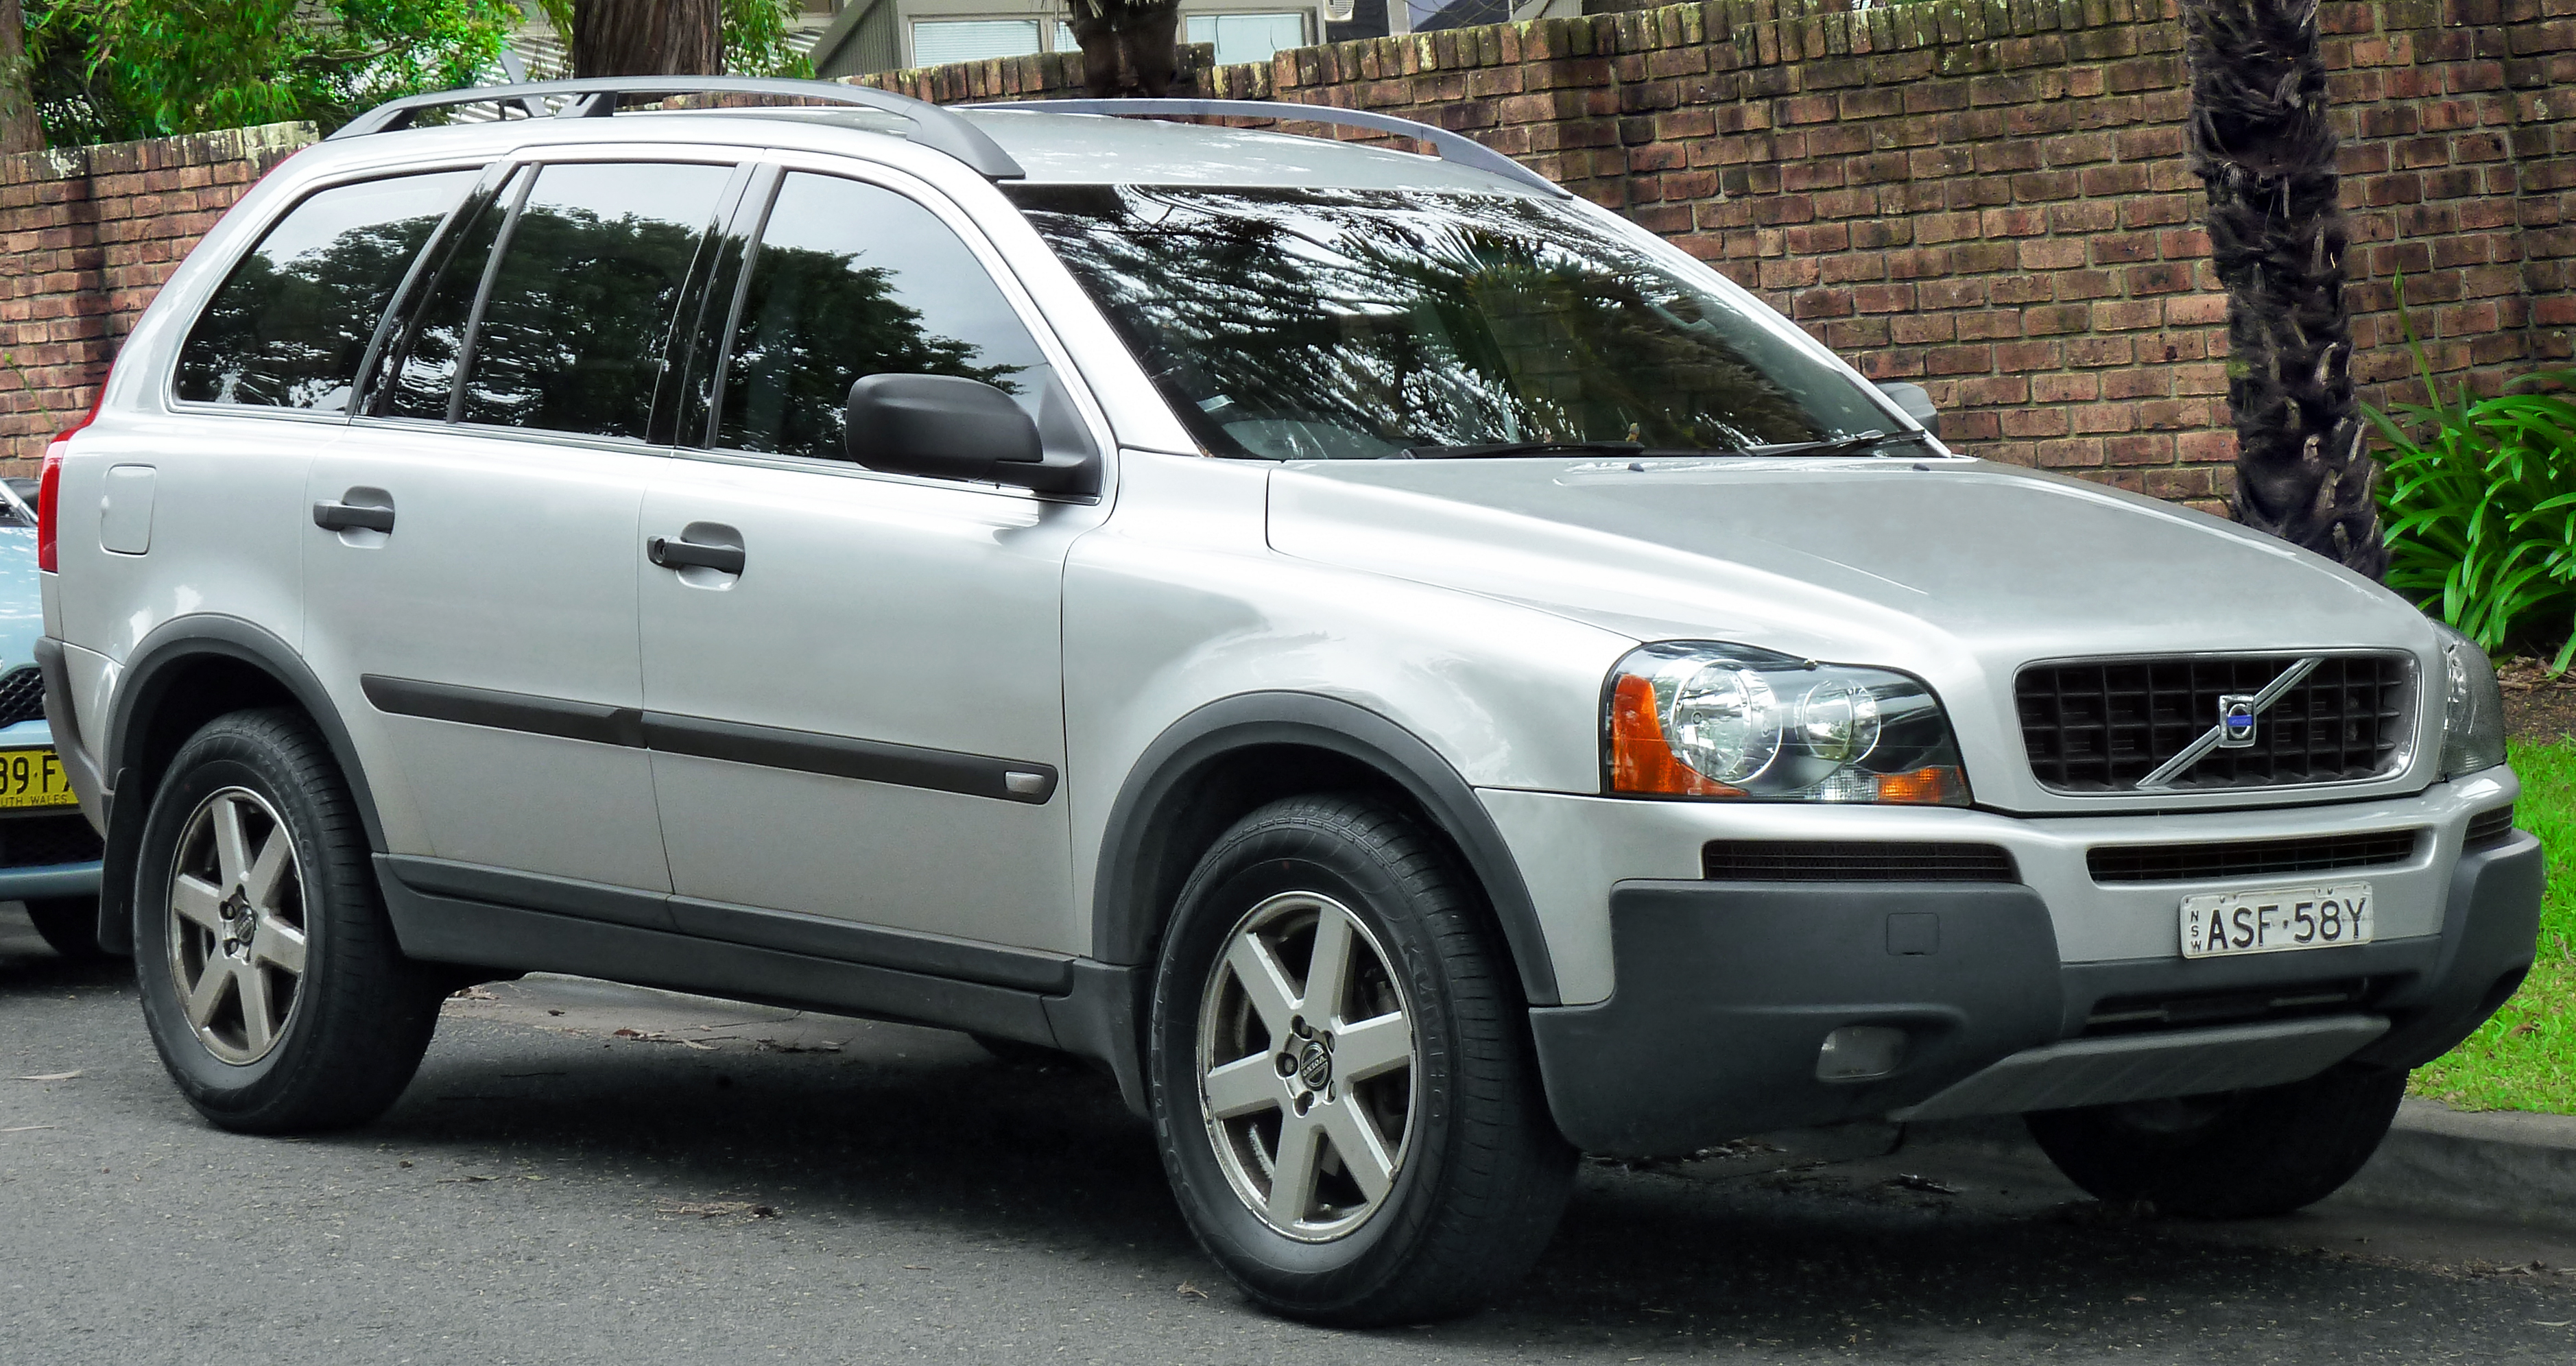 2003 volvo xc90 1 volvo xc90 wiring diagram volvo xc90 water pump wiring diagram 2004 volvo xc90 wiring diagrams at crackthecode.co